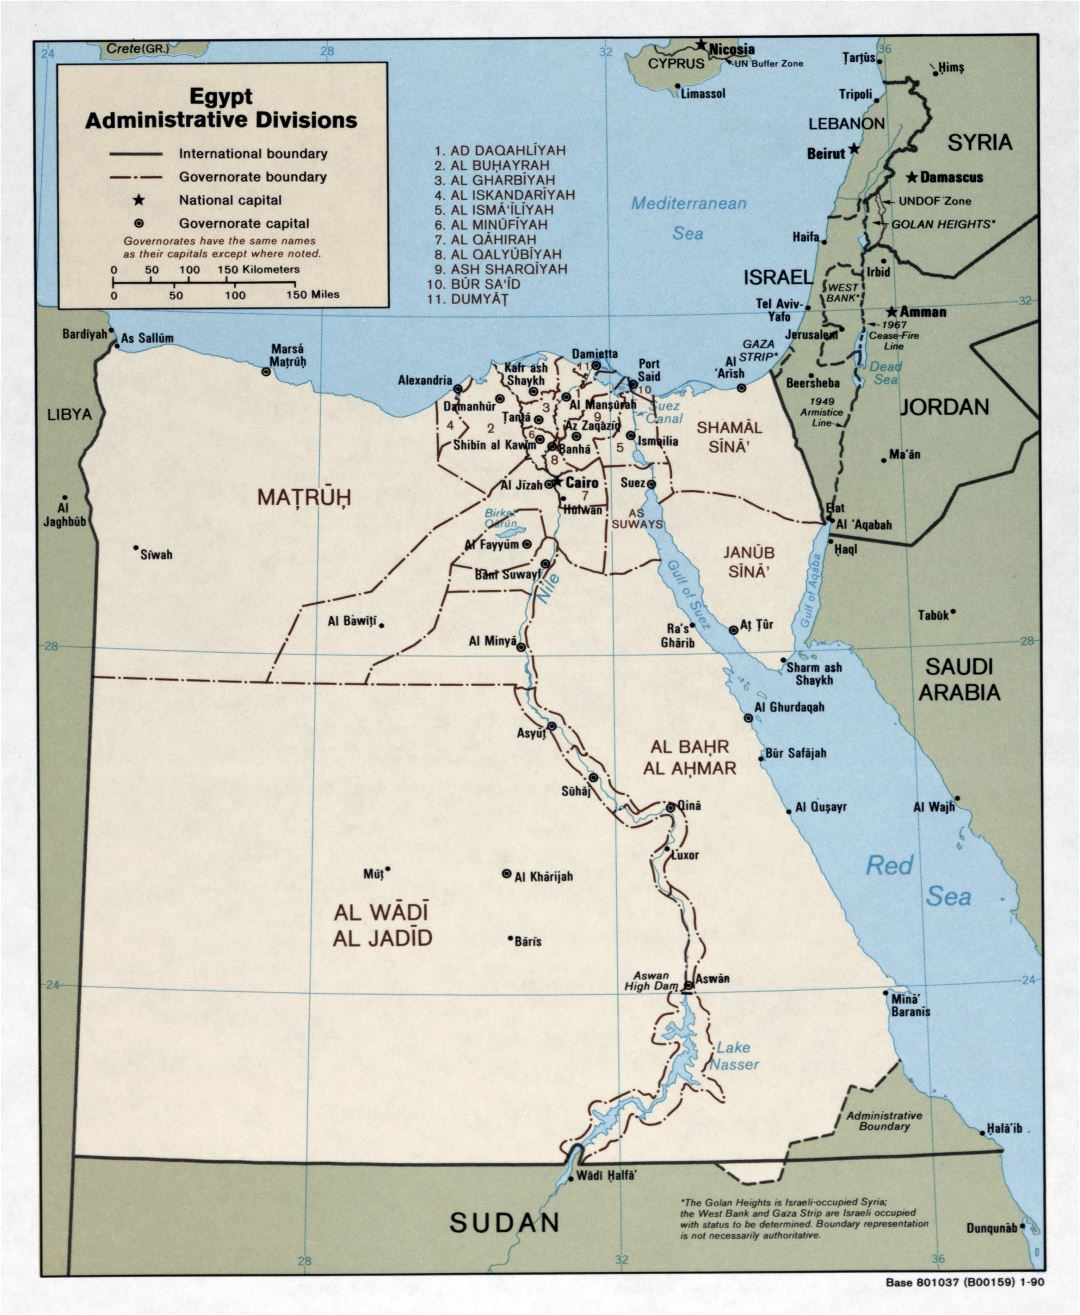 Large scale administrative divisions map of Egypt - 1990